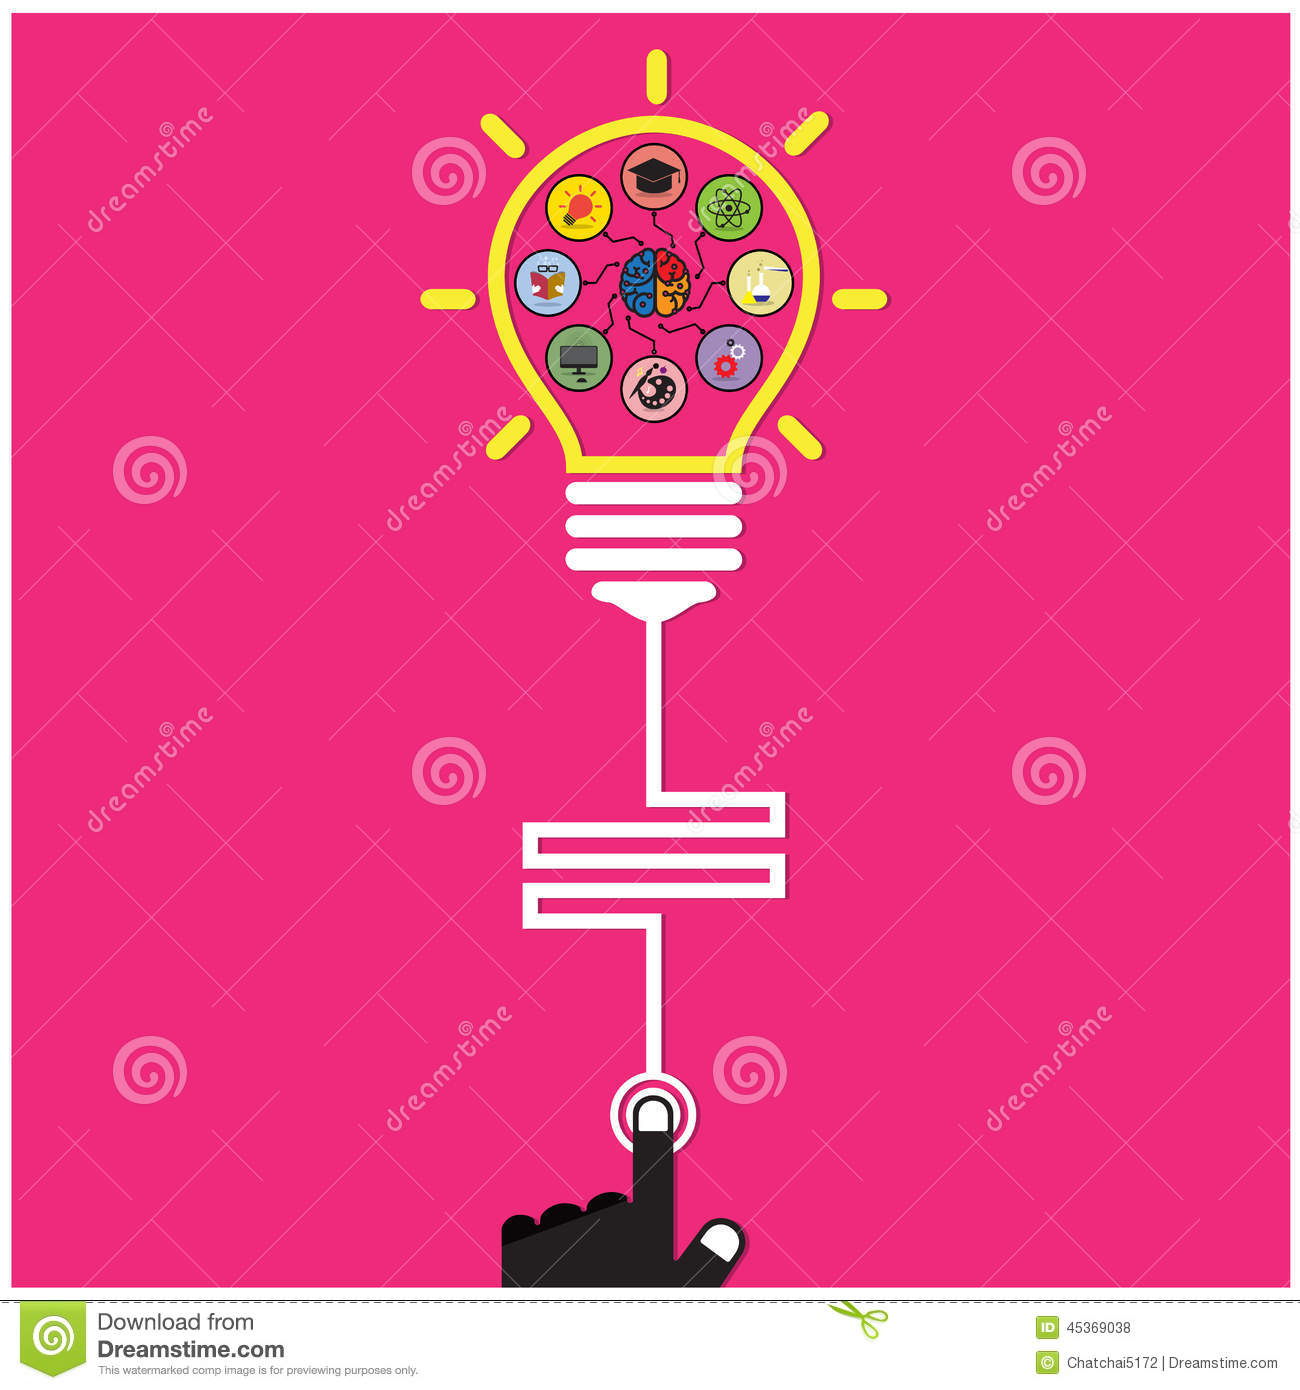 Infographic Template Creative Light Bulb And Brain